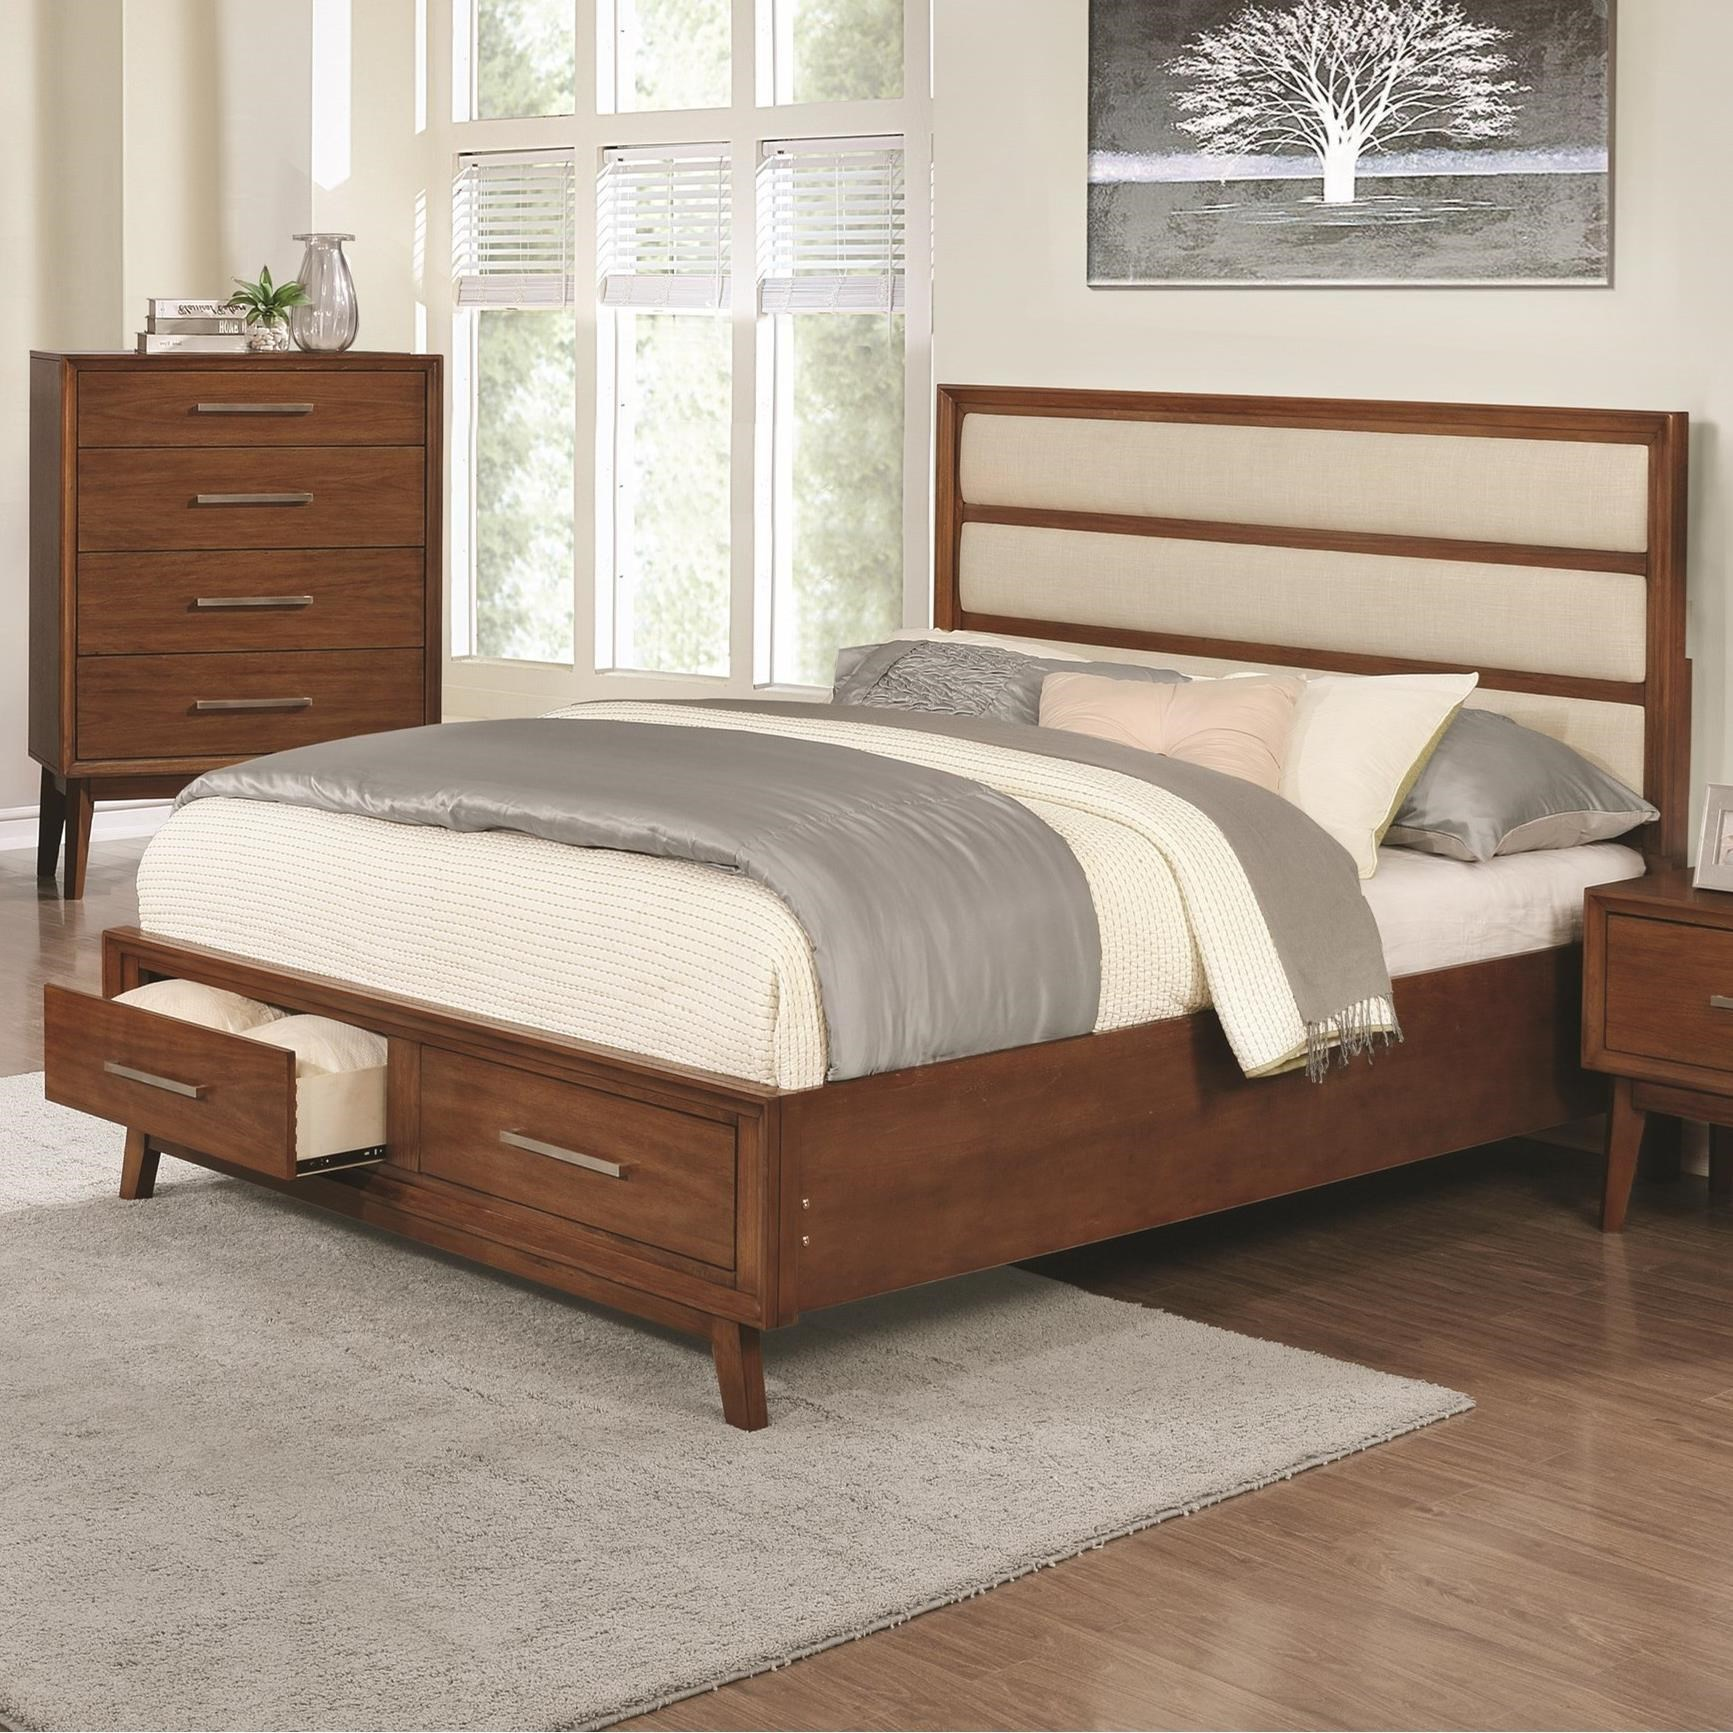 Banning upholstered panel california king bed with 2 for Upholstered bed with drawers